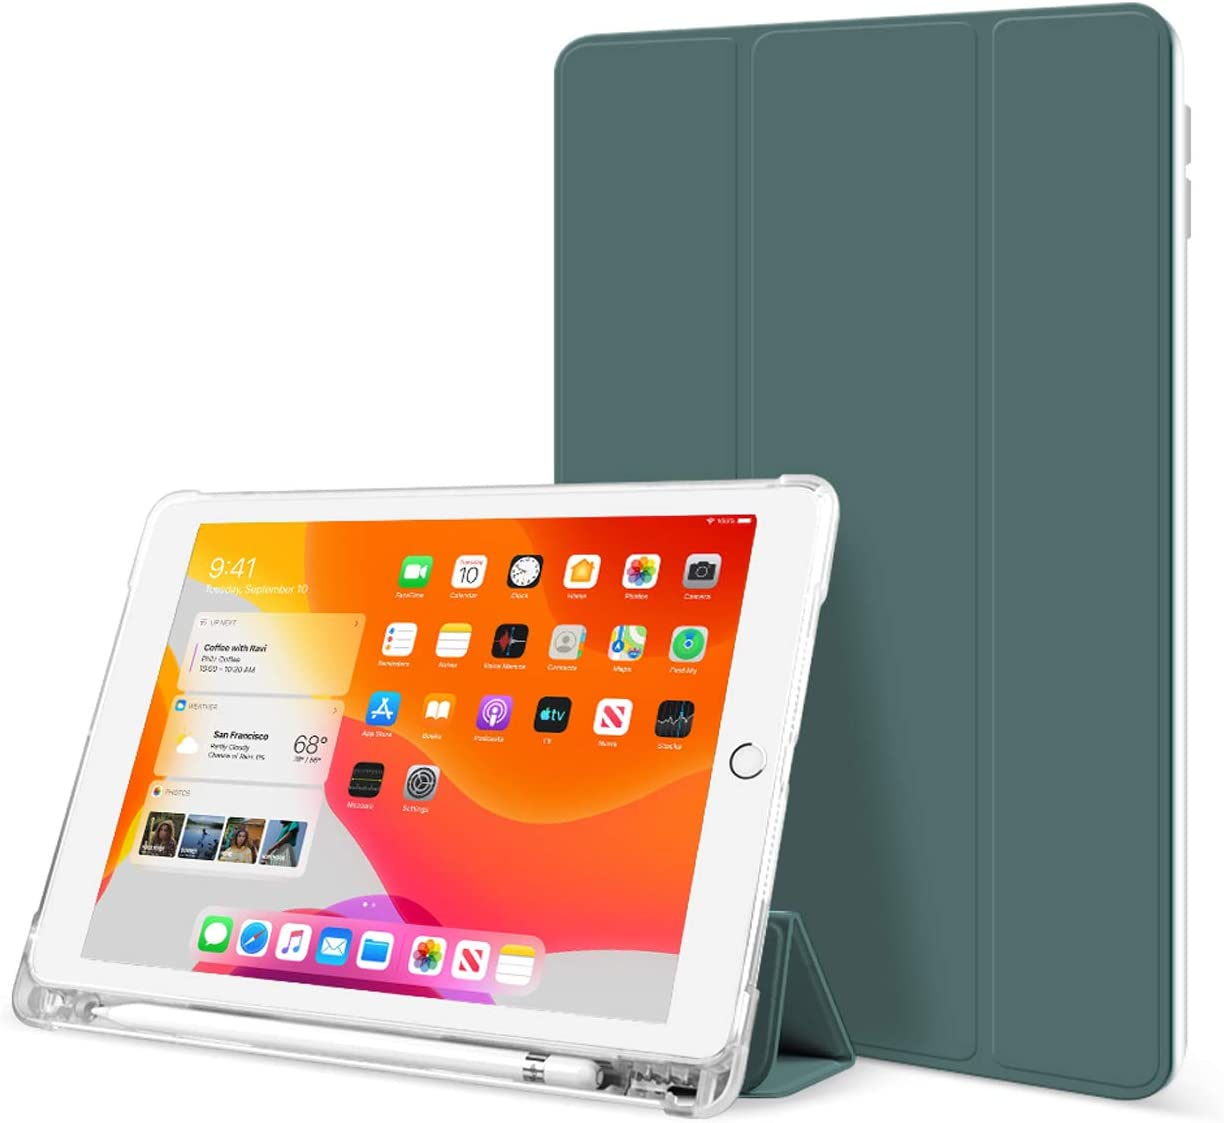 KenKe iPad 9.7 Inch 2018/2017 Case with Pencil Holder Cover Compatible with Leightweight Clear Transparent Smart Cases for Apple iPad 9.7 5th/6th Generation Soft TPU Skin (Dark Green)